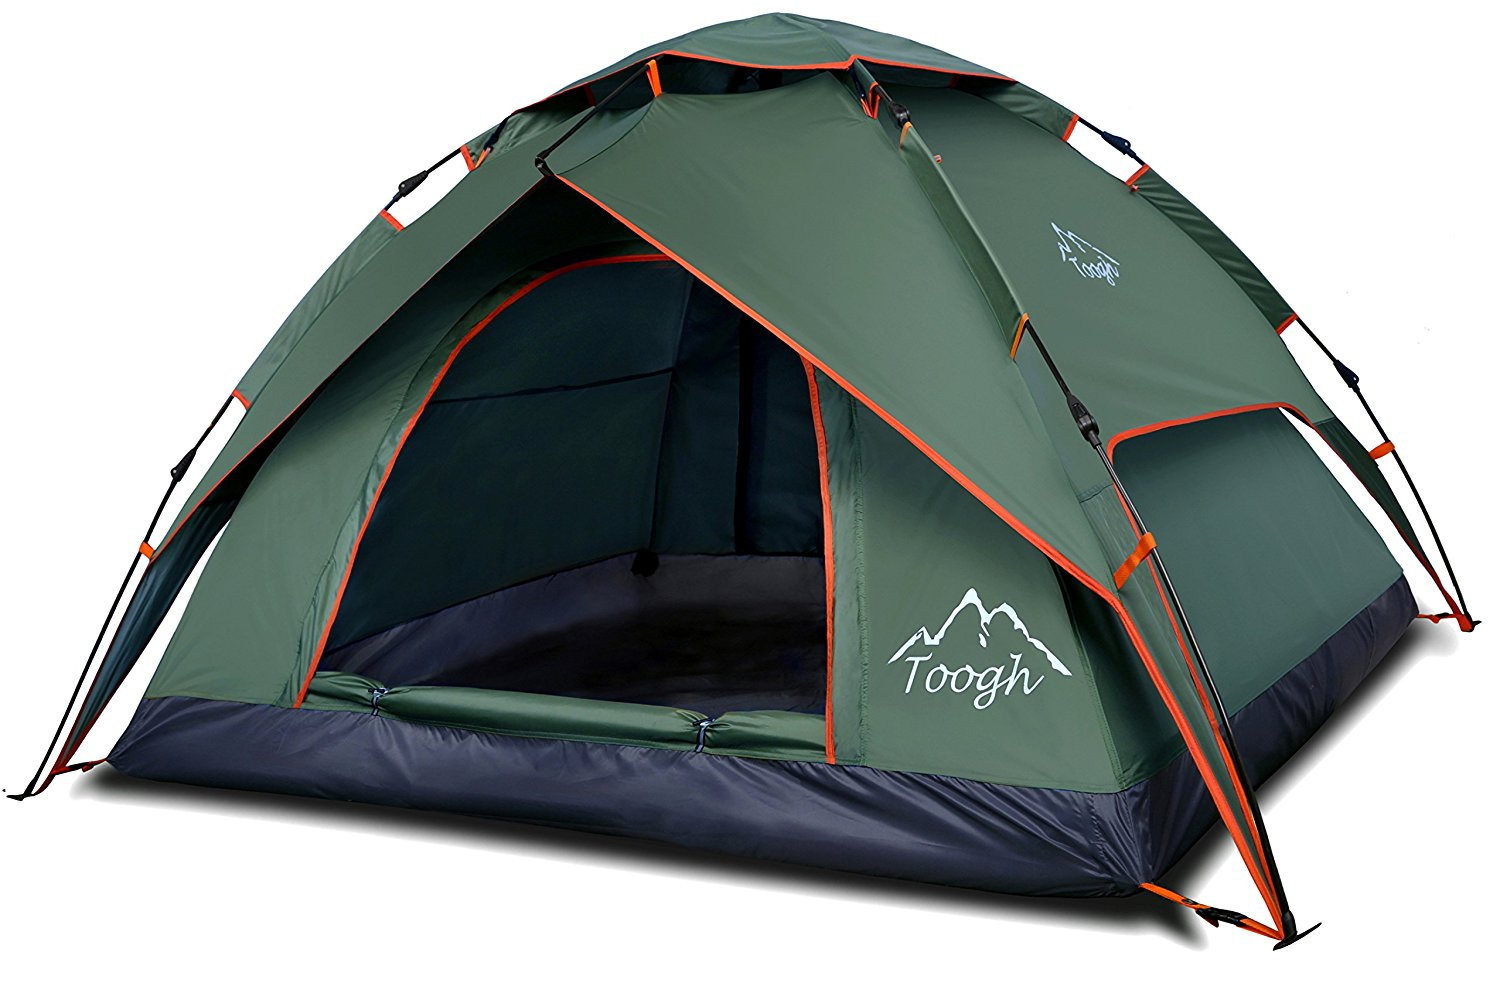 Tough 3 Season Tents 2-3 Person Tent  sc 1 st  Outdoors Voyager & 10 of The Best Tents for Rain of 2018 (Waterproof Tents)